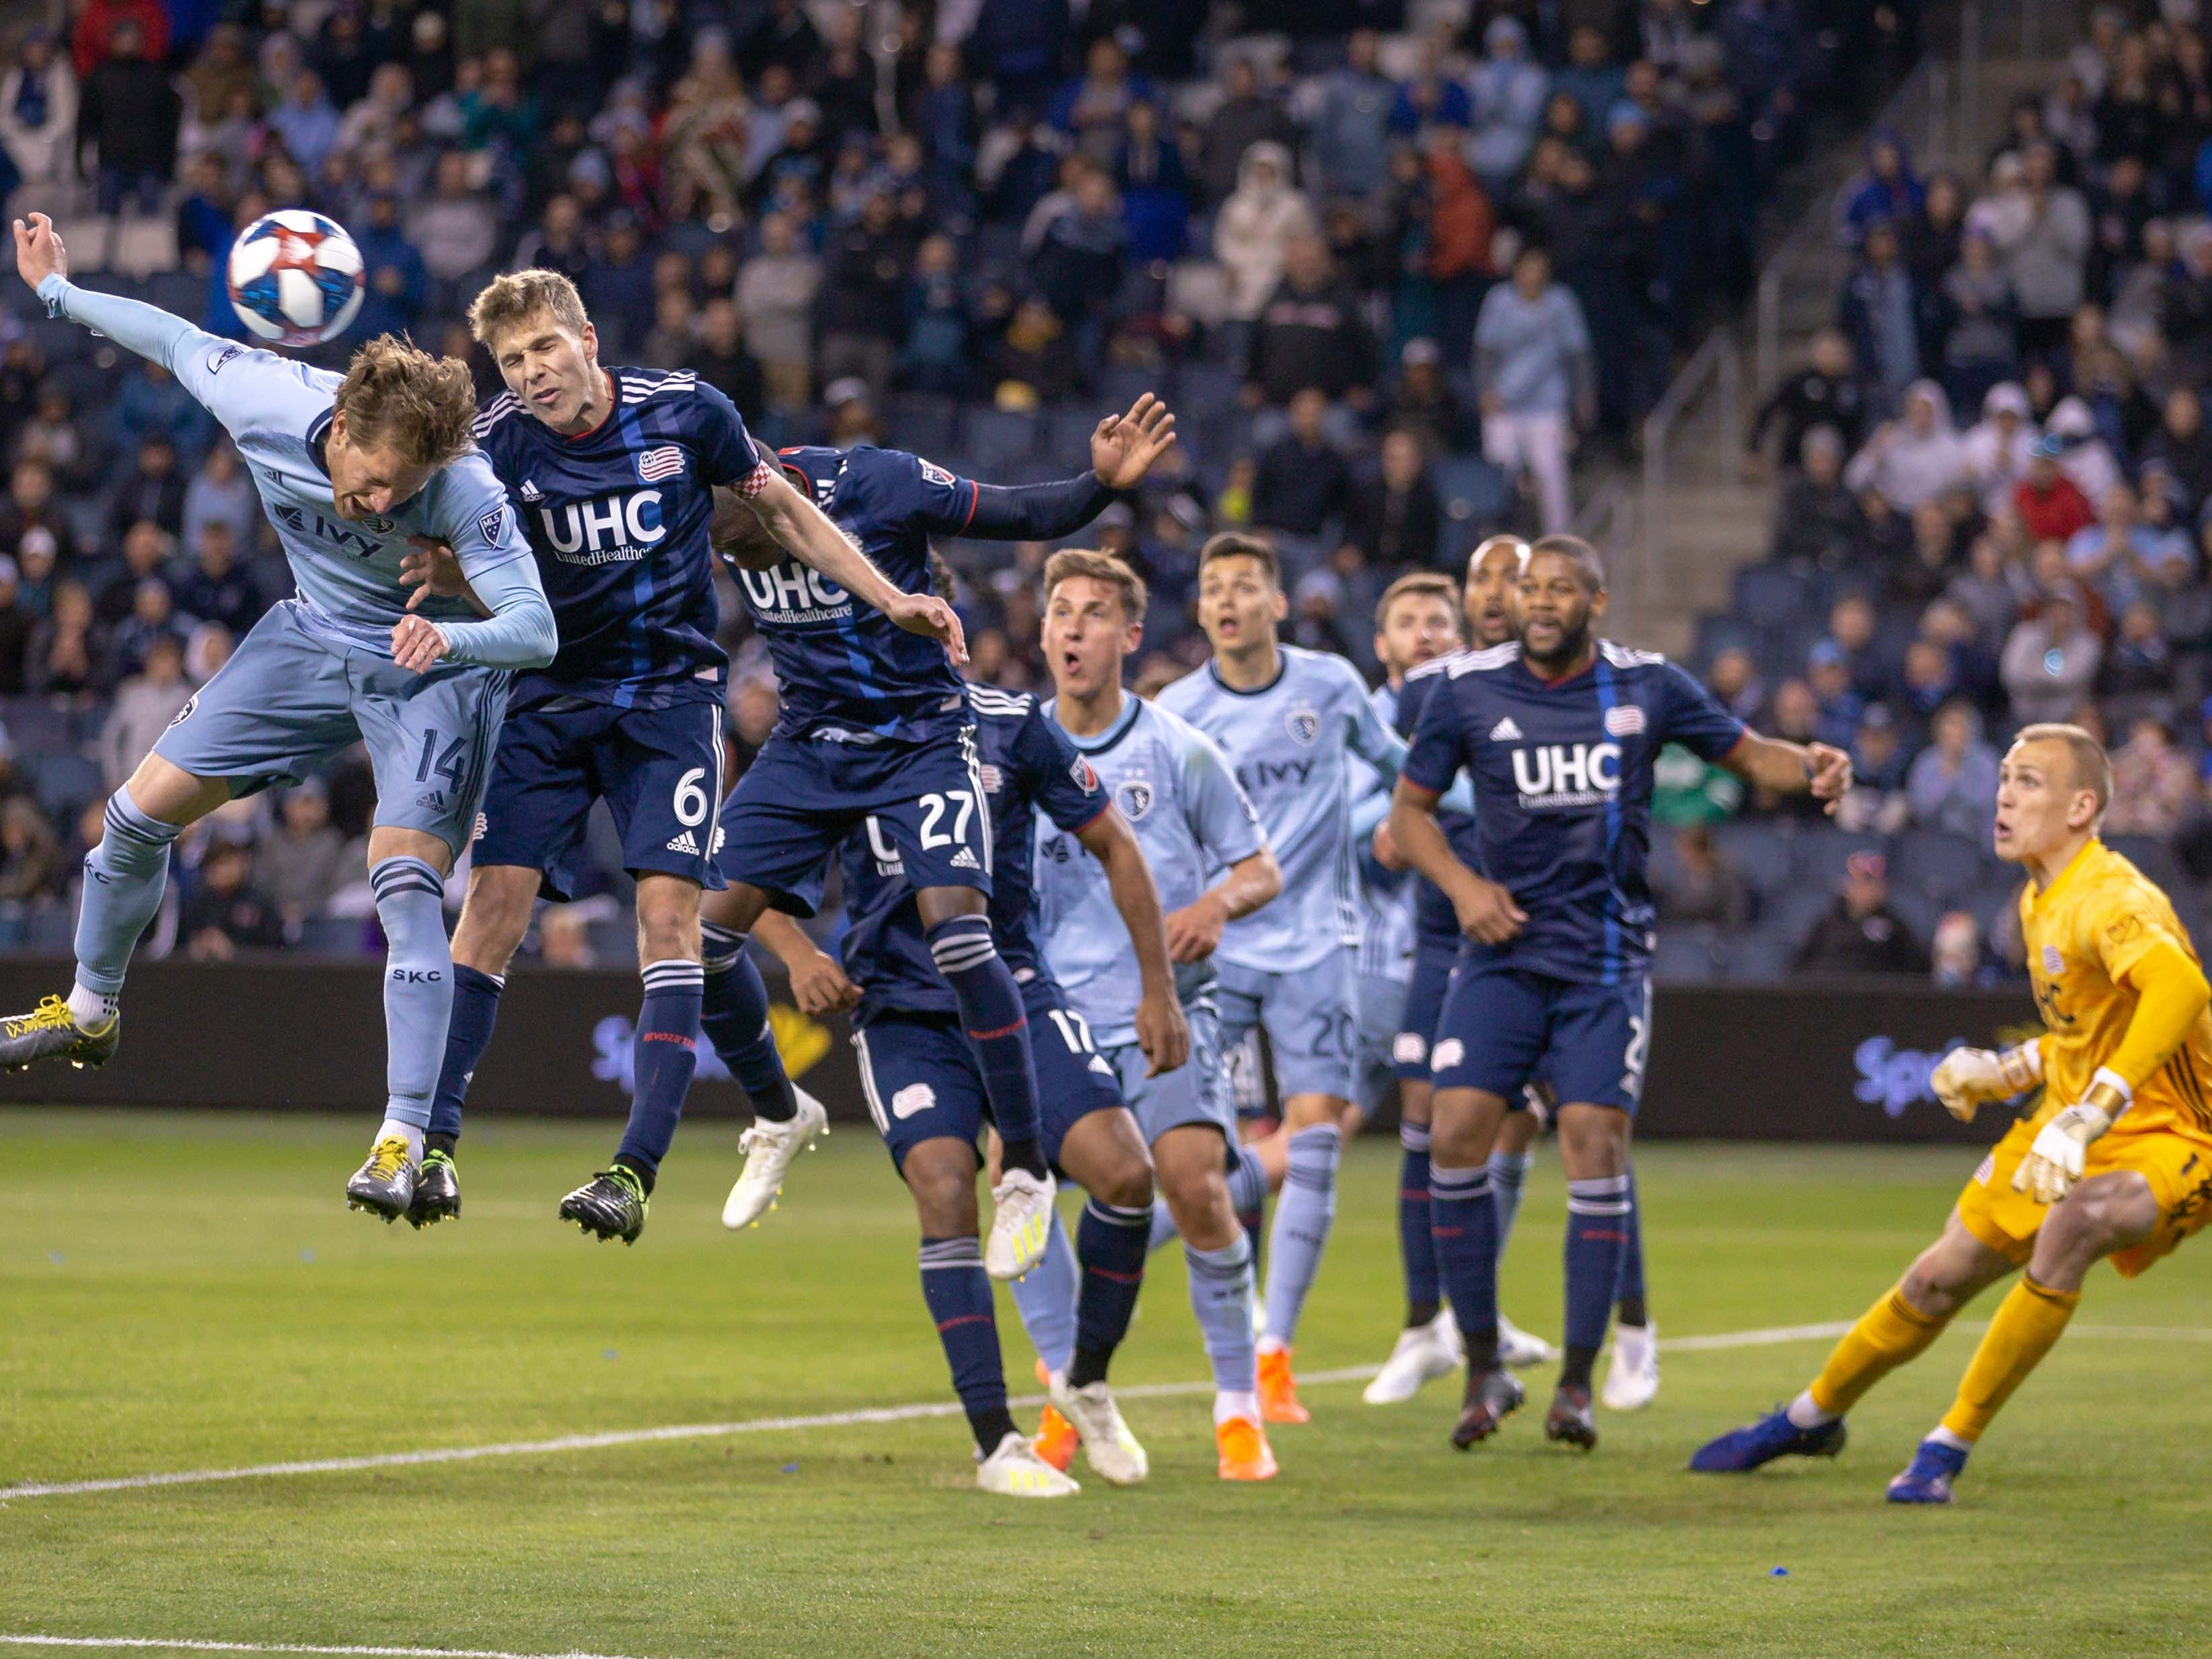 April 27: Sporting Kansas City and New England Revolution players go up for a header after a corner kick during the second half at Childrens Mercy Park. The game ended in a 4-4 tie.